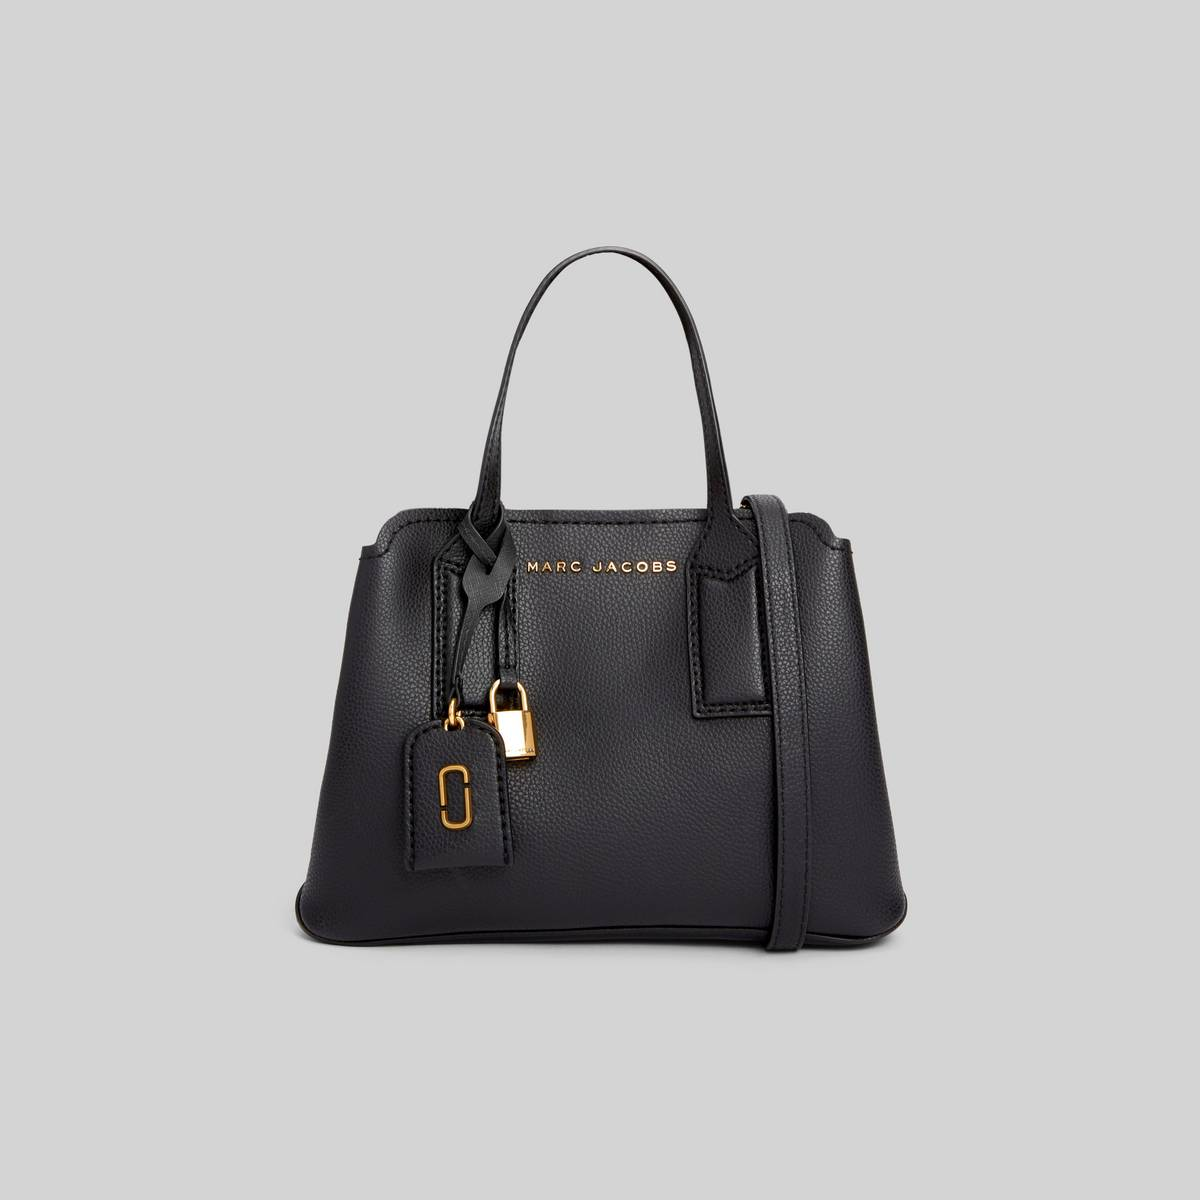 Leather tote with shoulder straps and 3 interior sections. | MARC JACOBS Women\\'s The Editor Crossbody Bag in Black